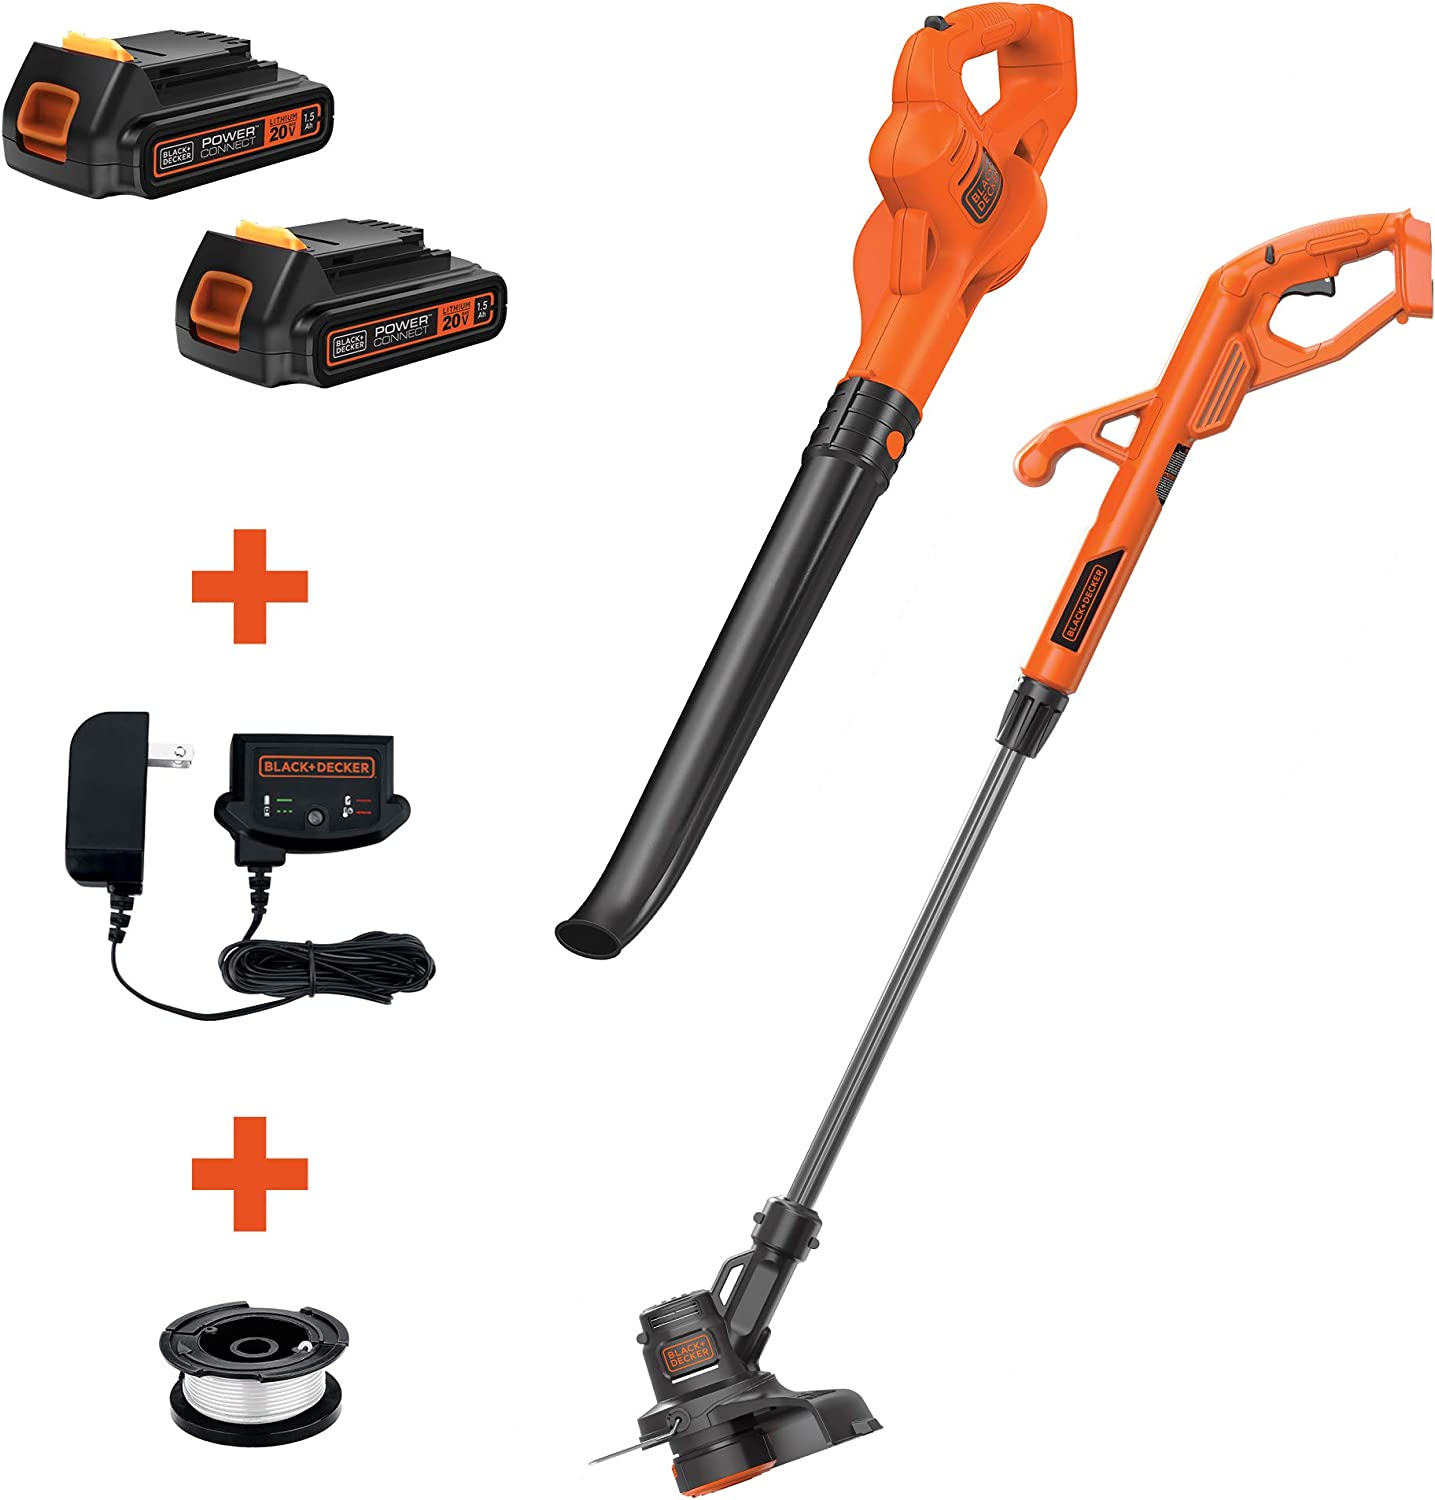 BLACK+DECKER LCC222 20V MAX Lithium String Trimmer/Edger, Sweeper Plus, 10